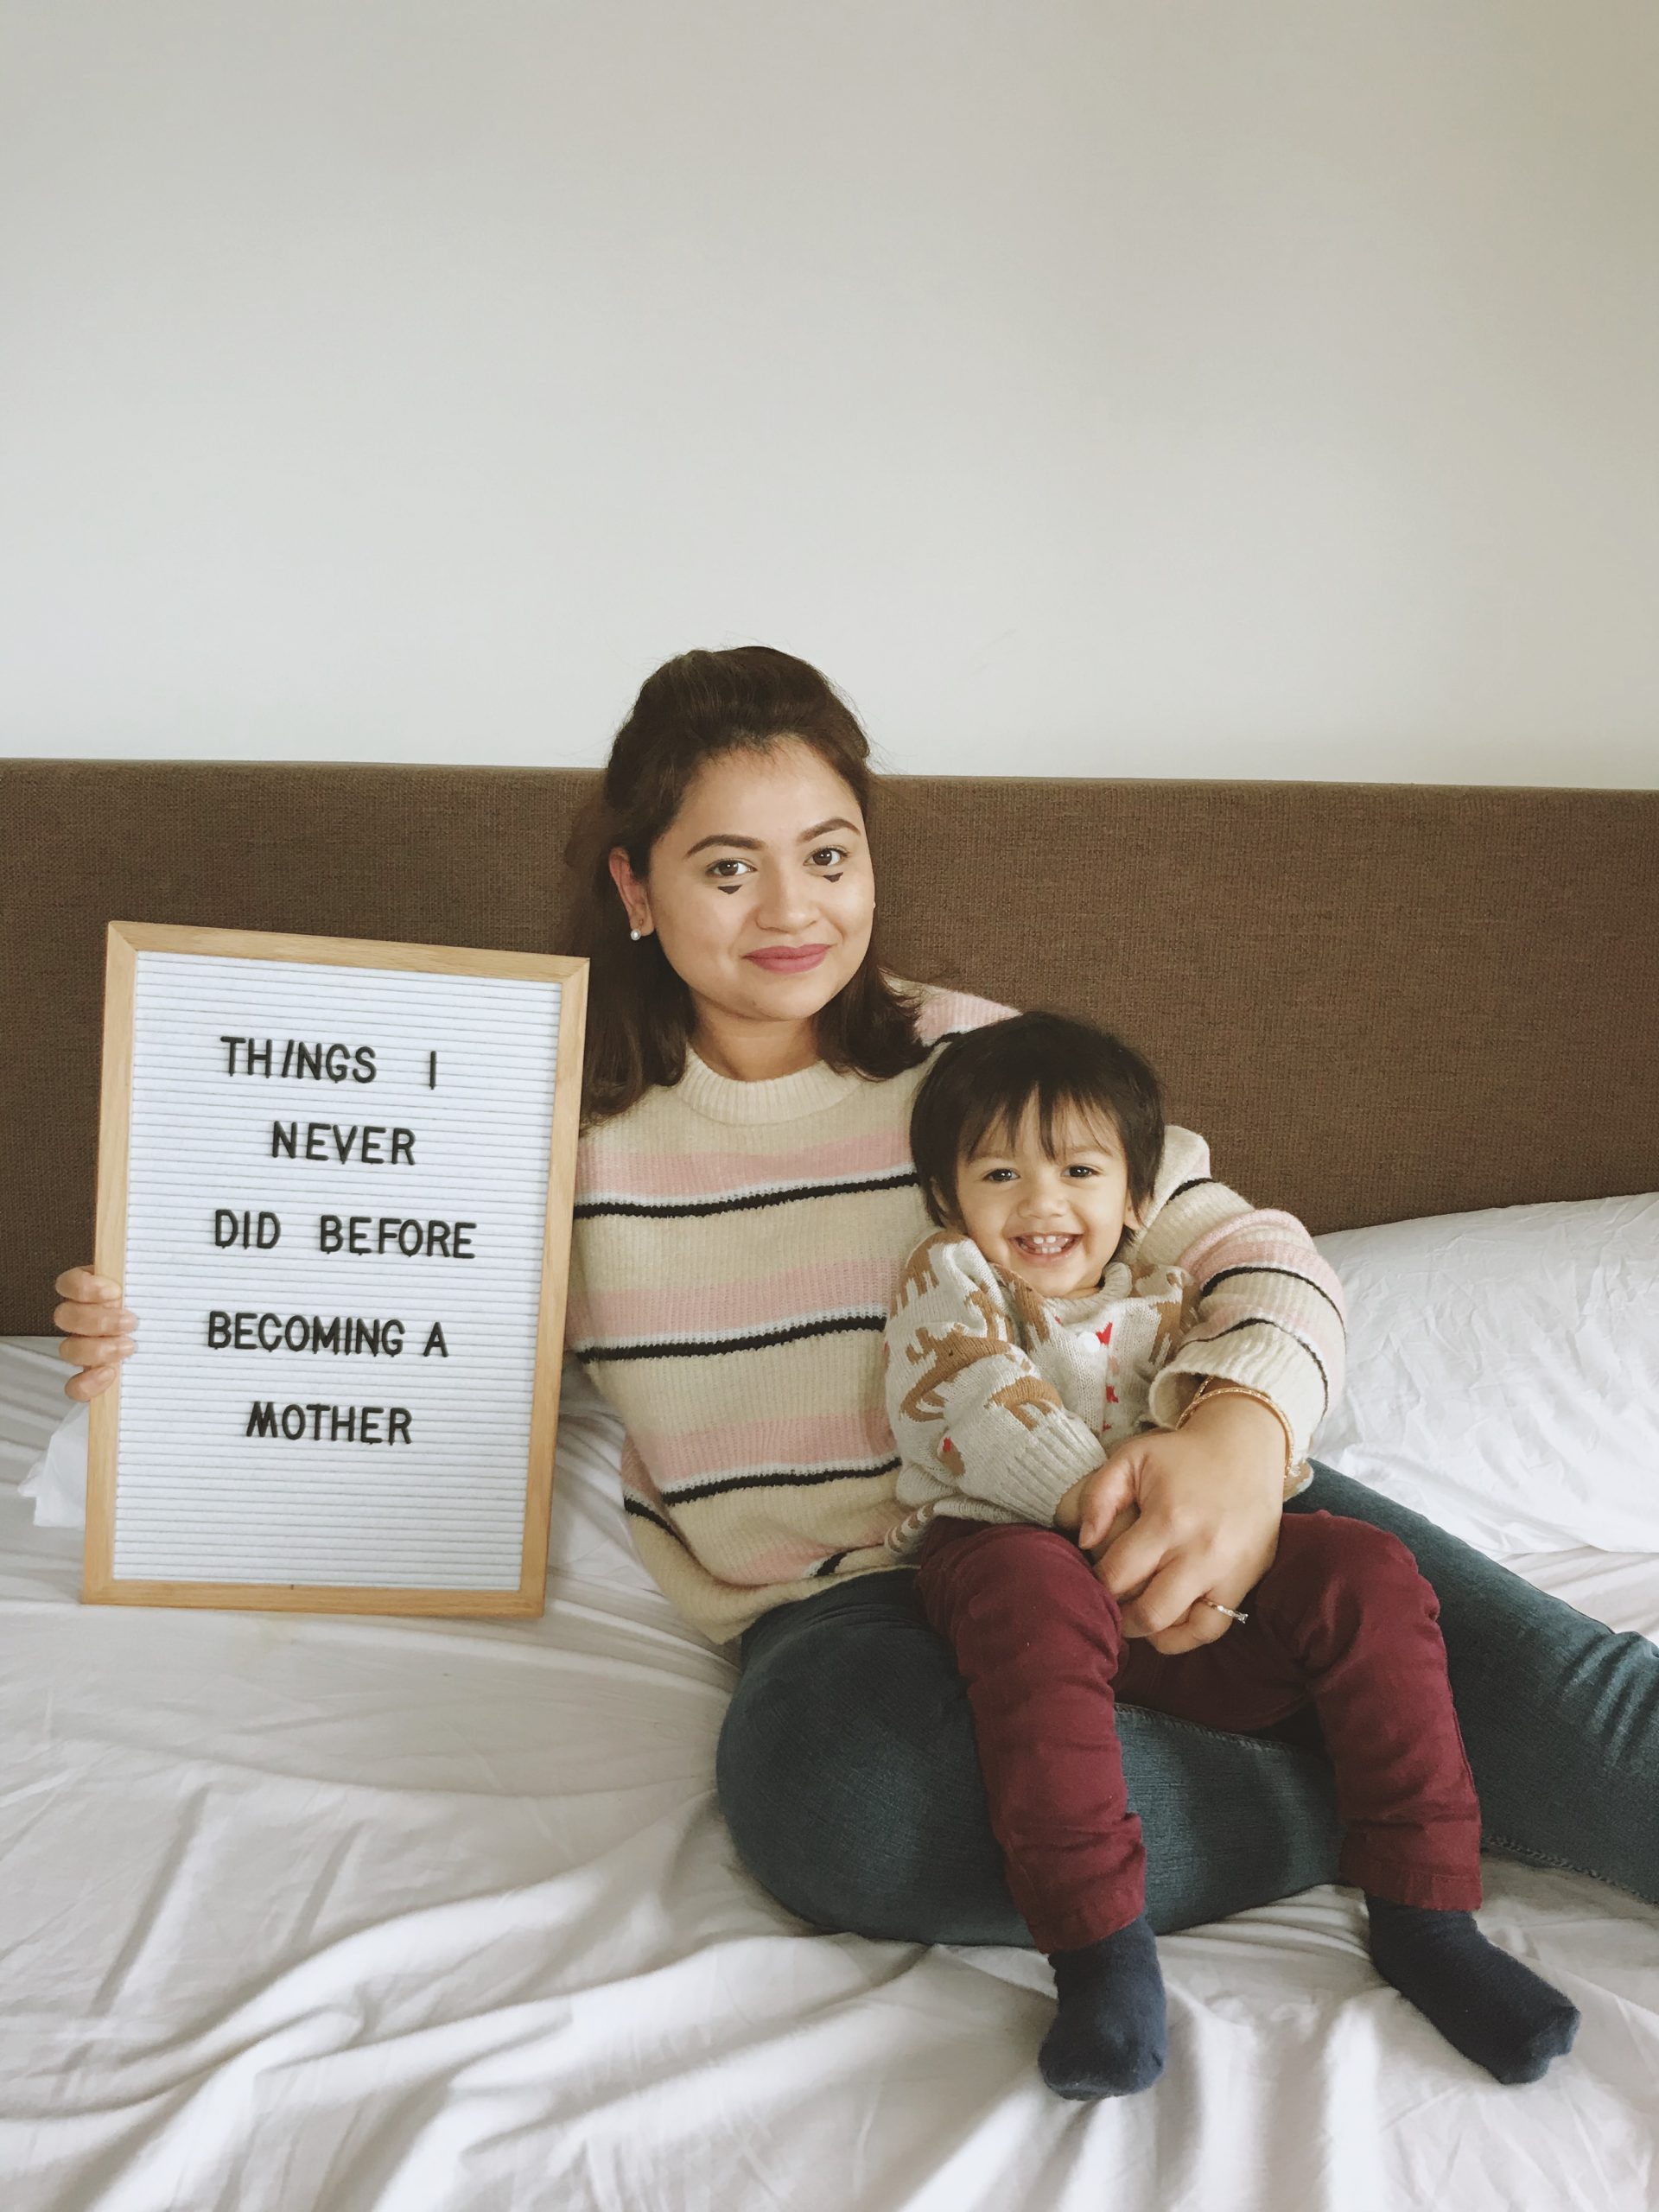 Things I Never Did Before Becoming a Mom